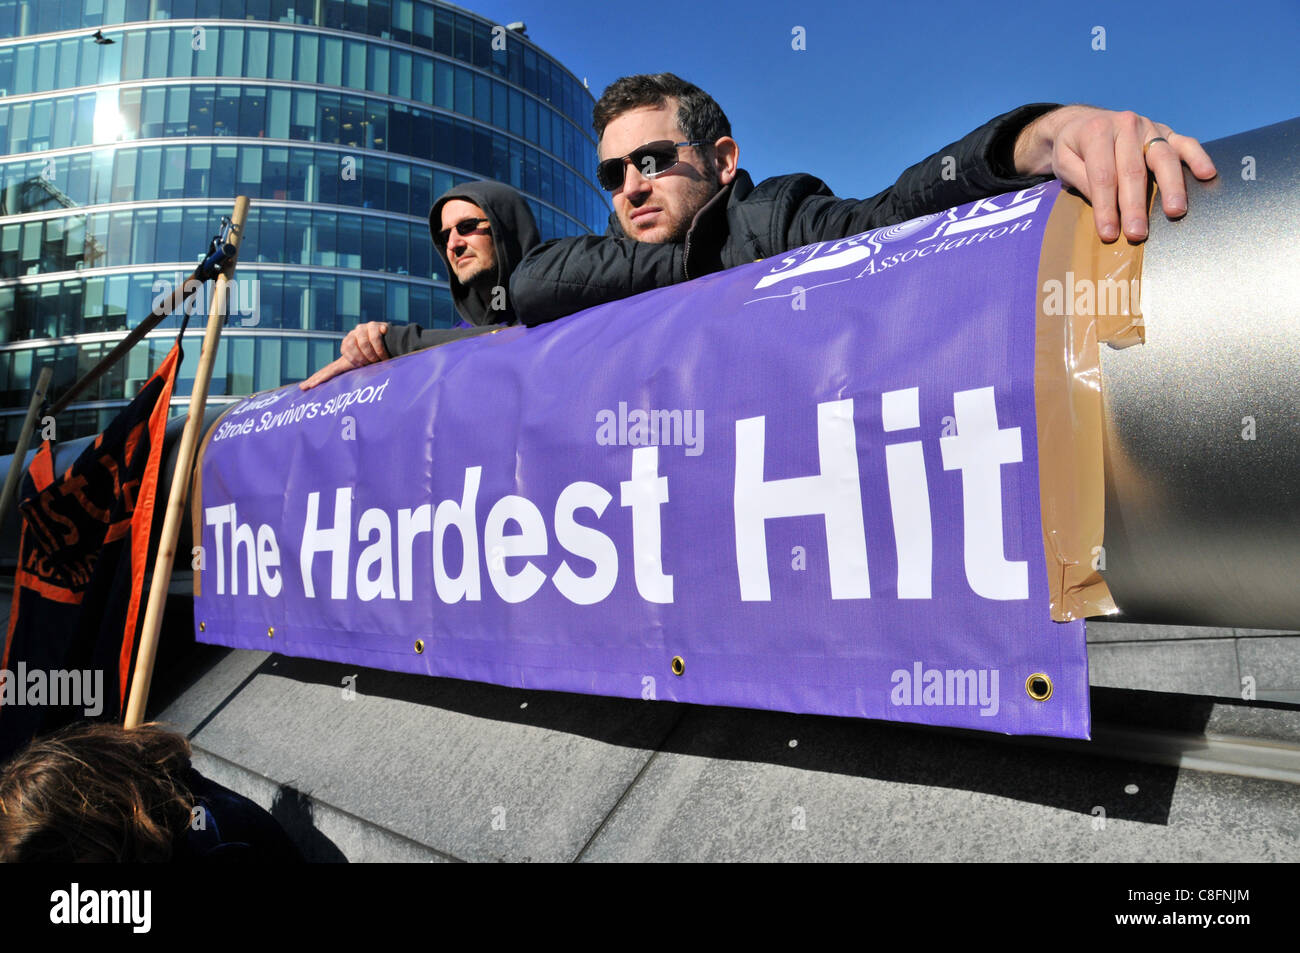 Welfare Reform Bill protest The Hardest Hit banner at the protest against benefit cuts for disabled people Stock Photo